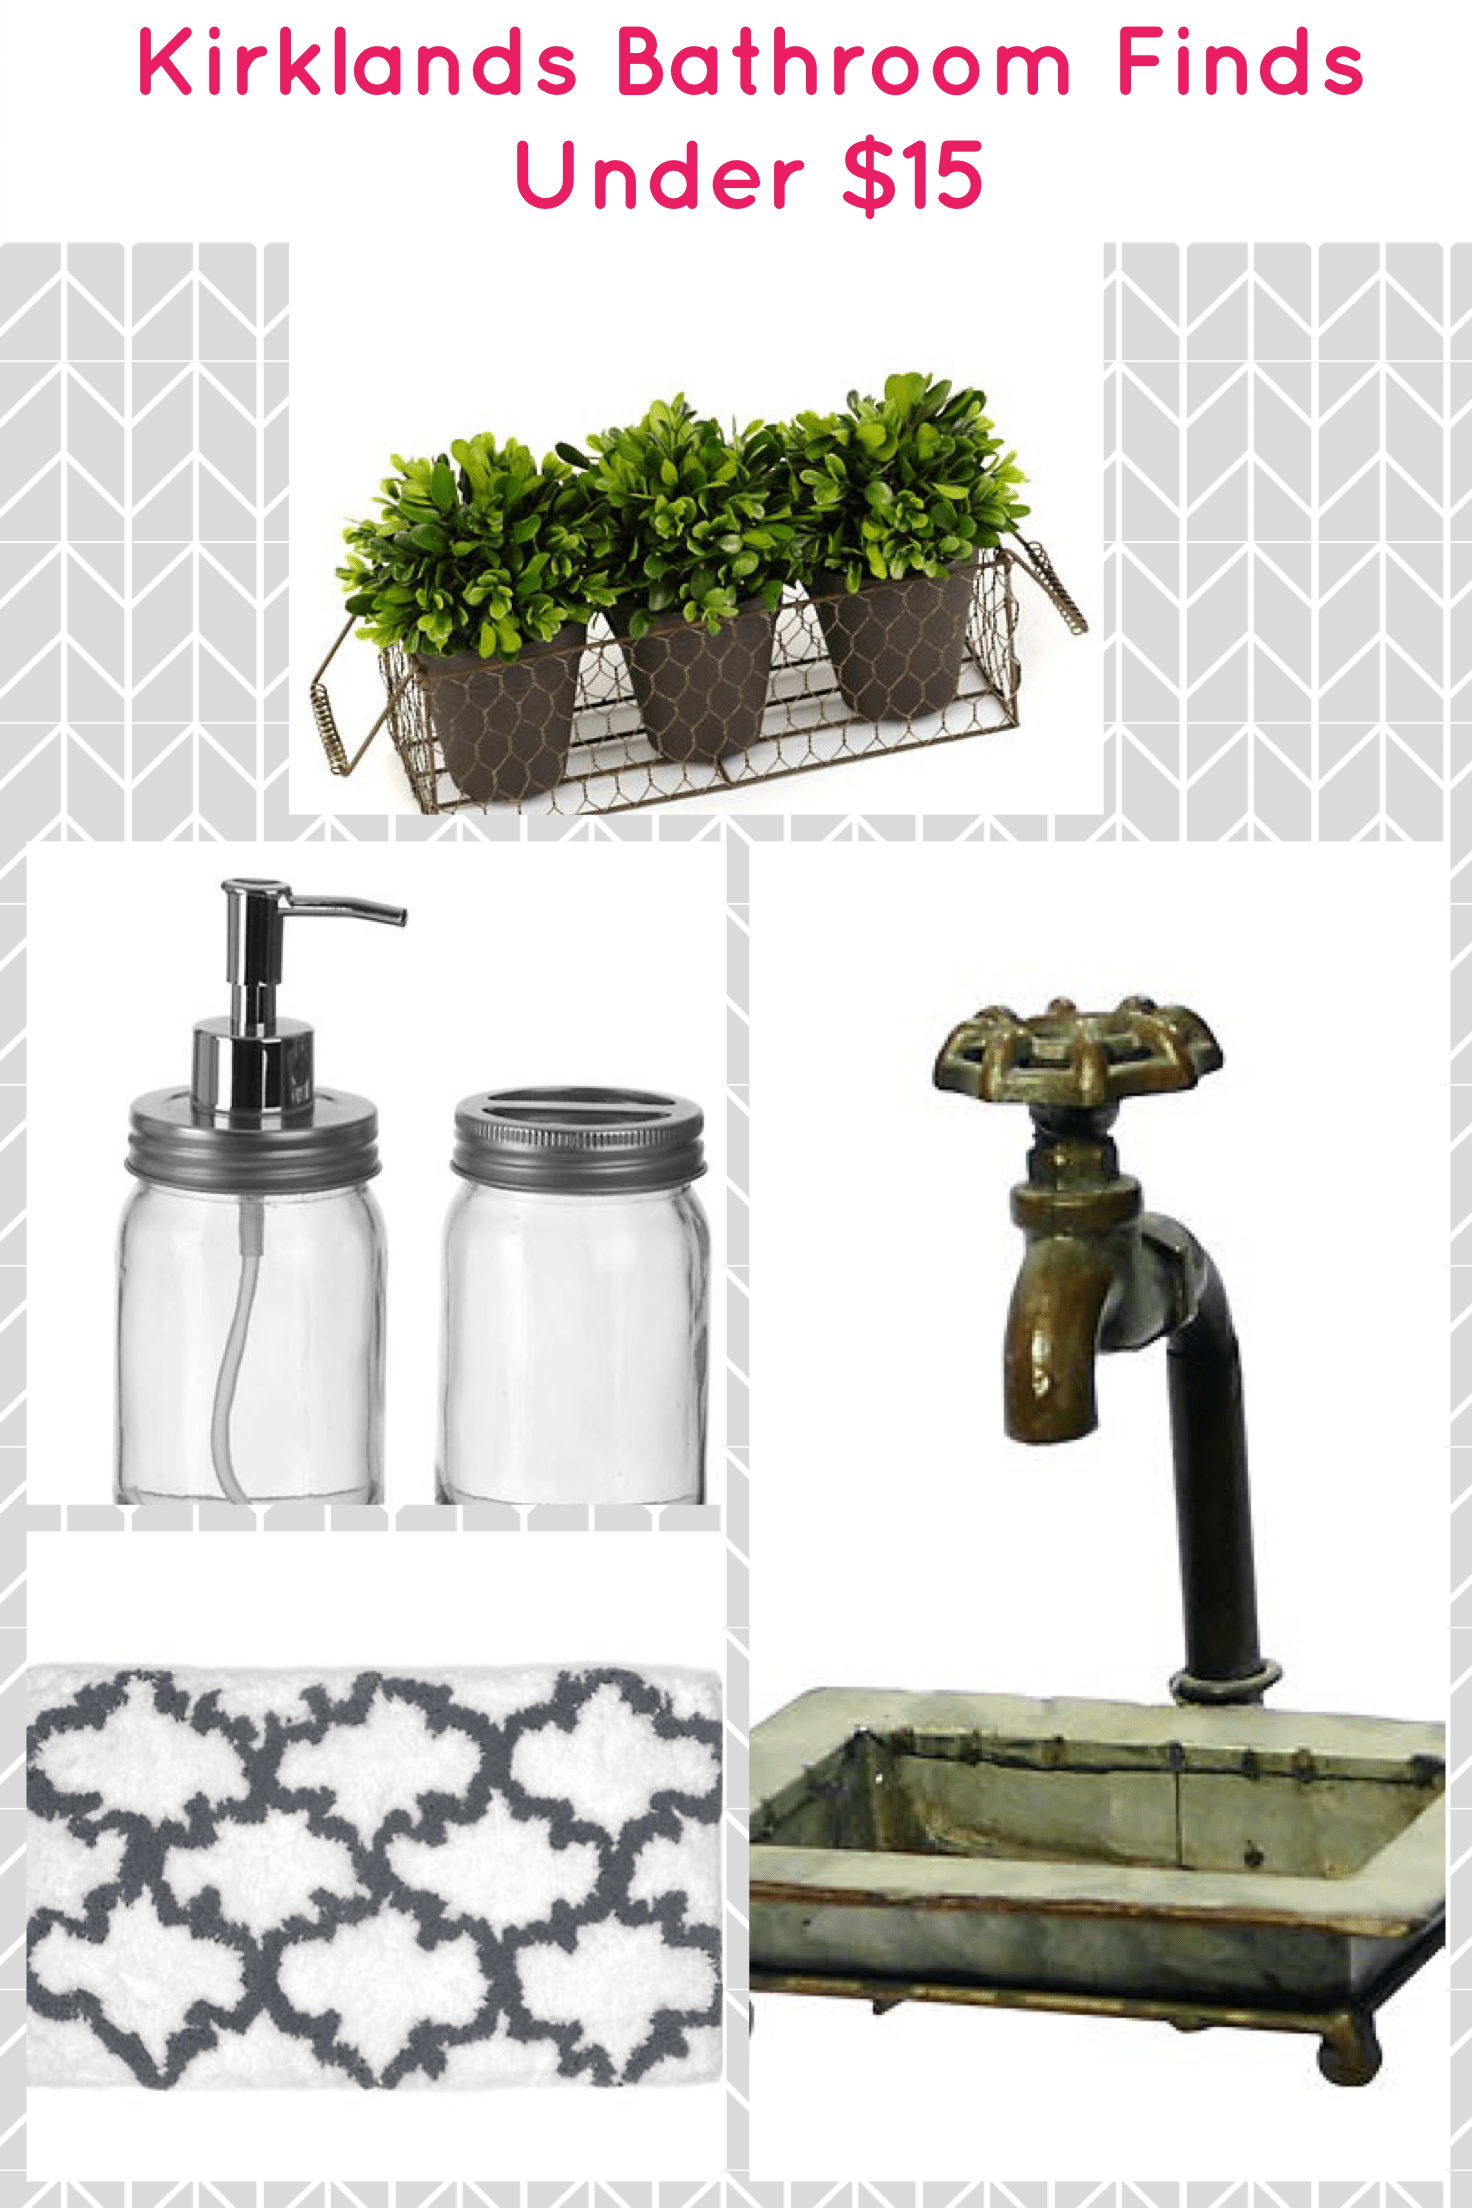 Exceptional Top 5 Farmhouse Bathroom Accessories From Kirklands Under $15